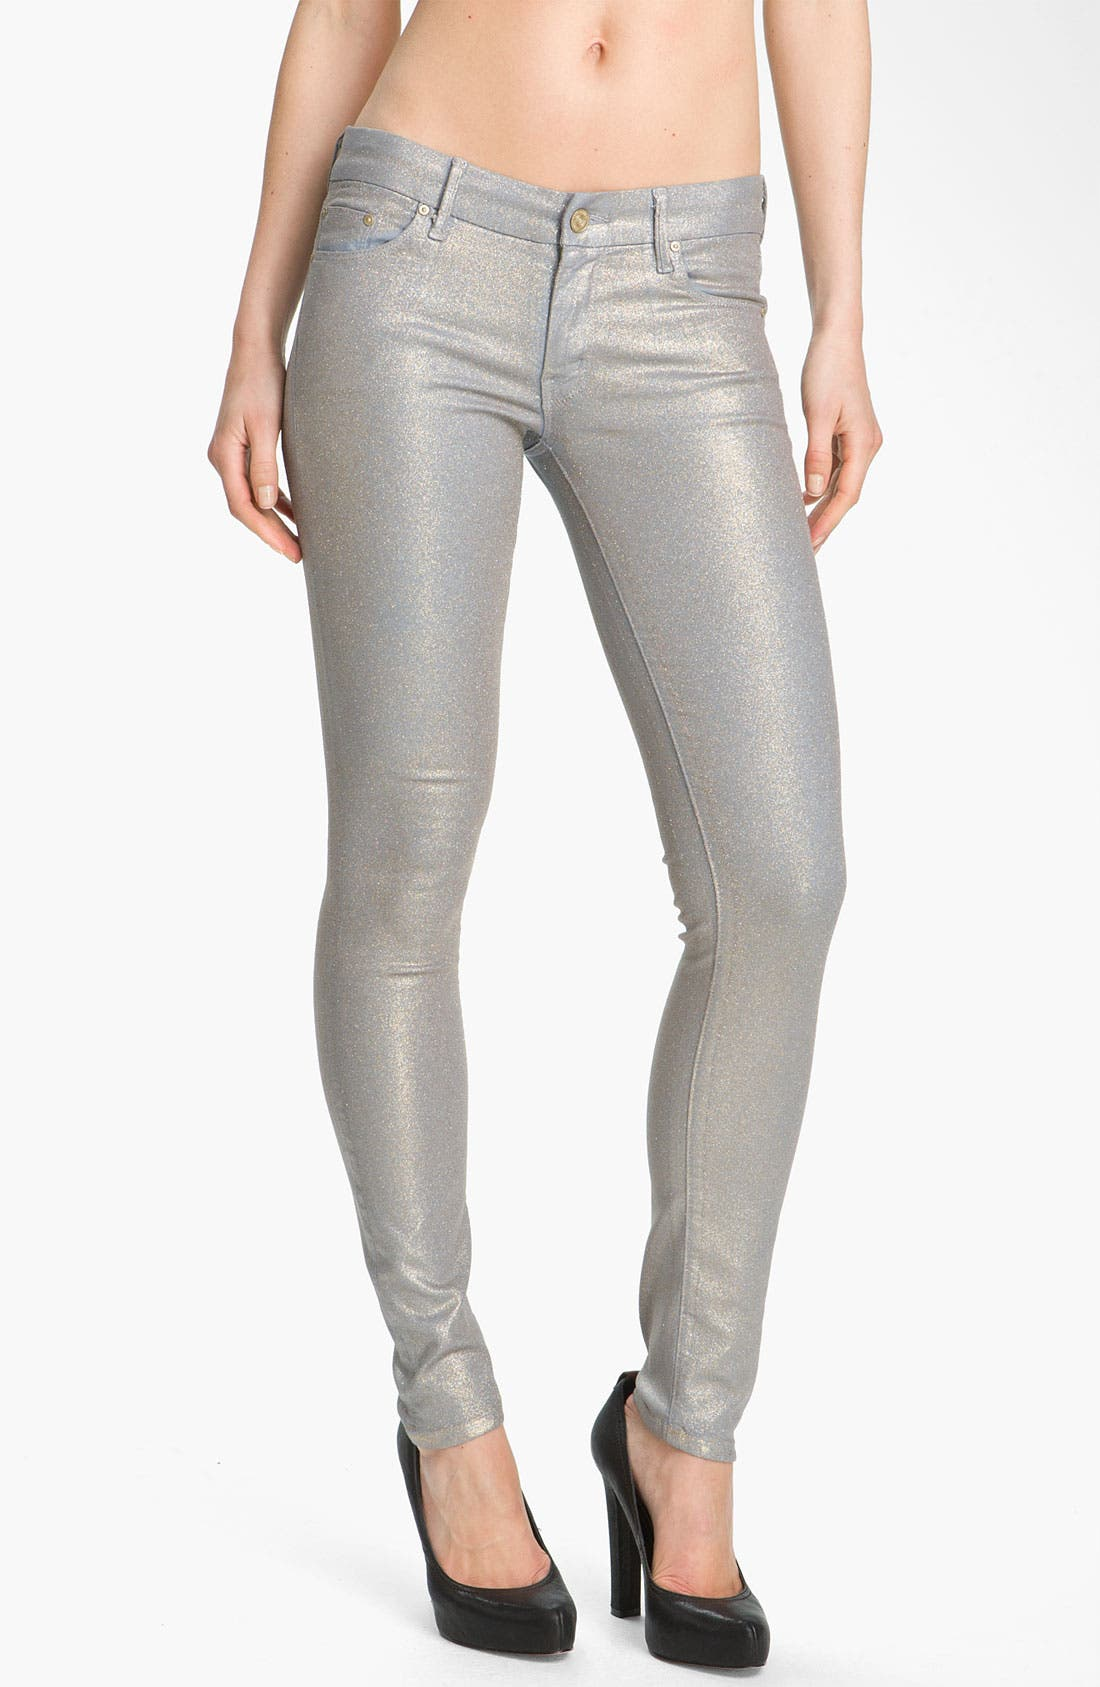 'The Looker' Skinny Stretch Jeans,                         Main,                         color, Powder Blue Glimmer